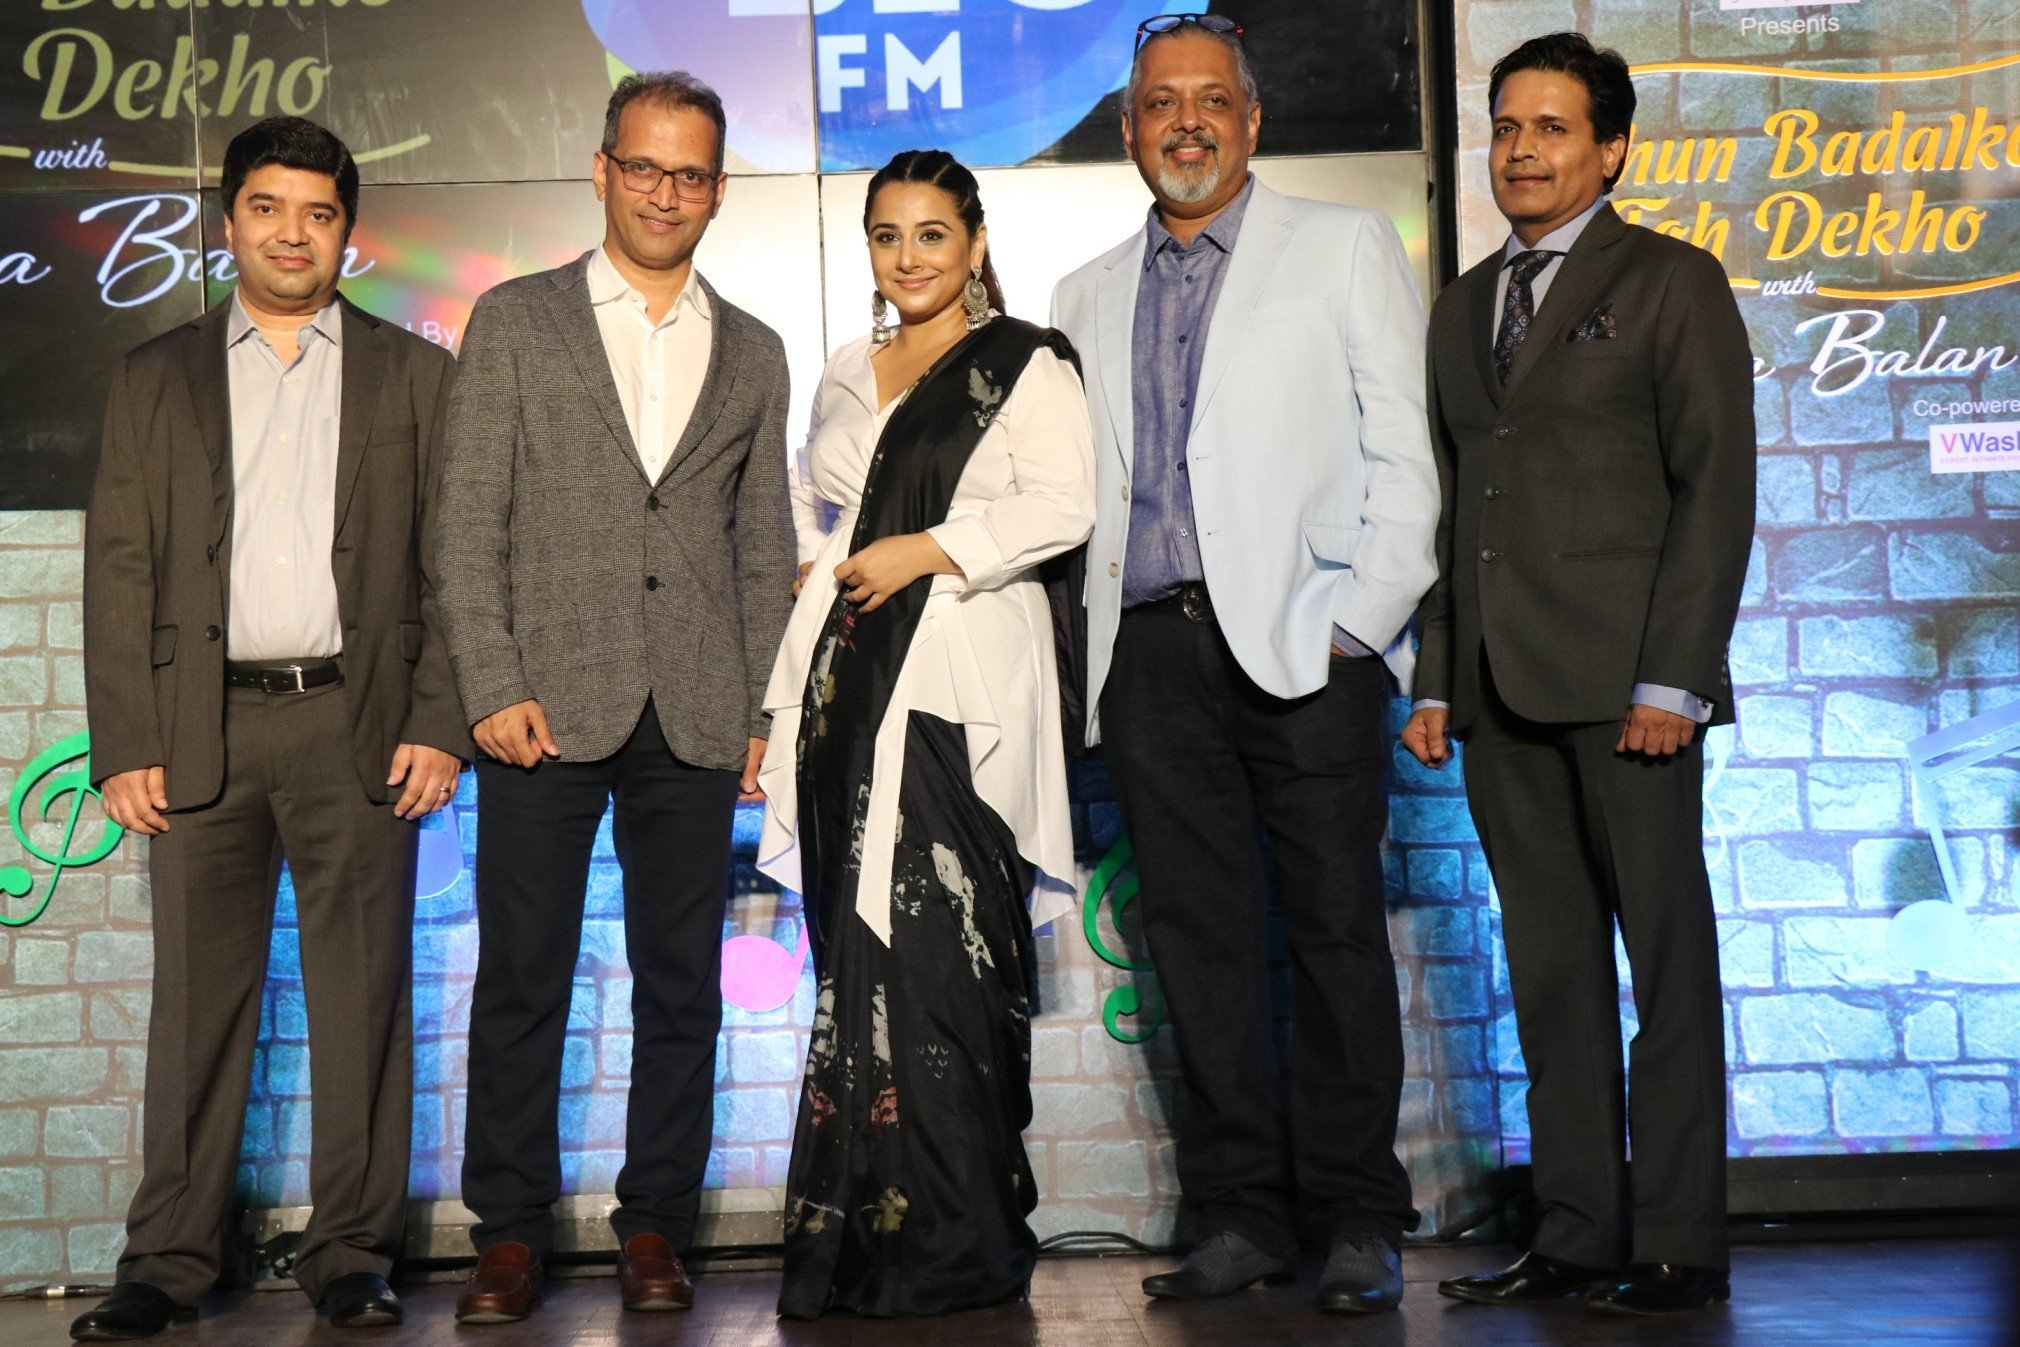 92.7 Big Fm launches new show 'Dhun Badal Ke Toh Dekho' with Vidya Balan